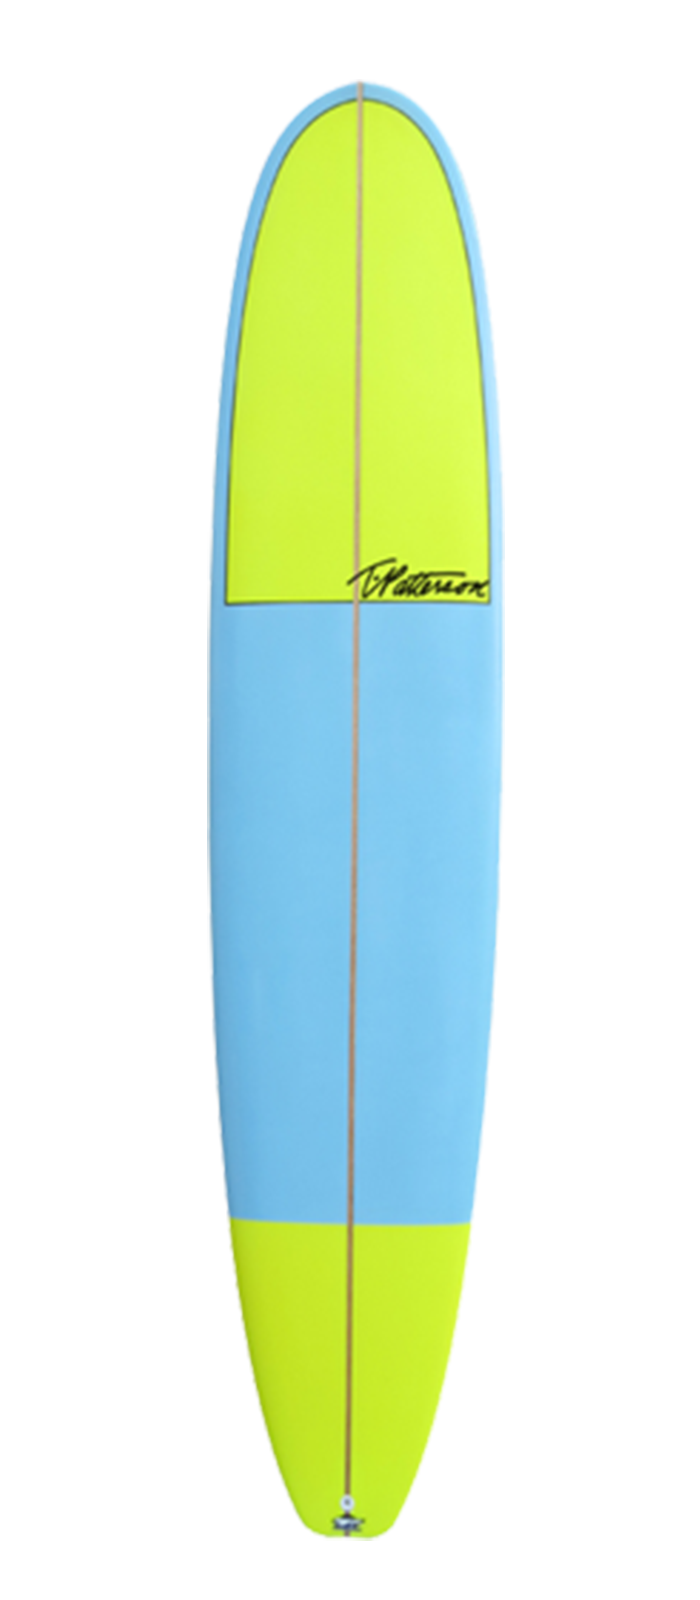 Cali Noserider surfboard model